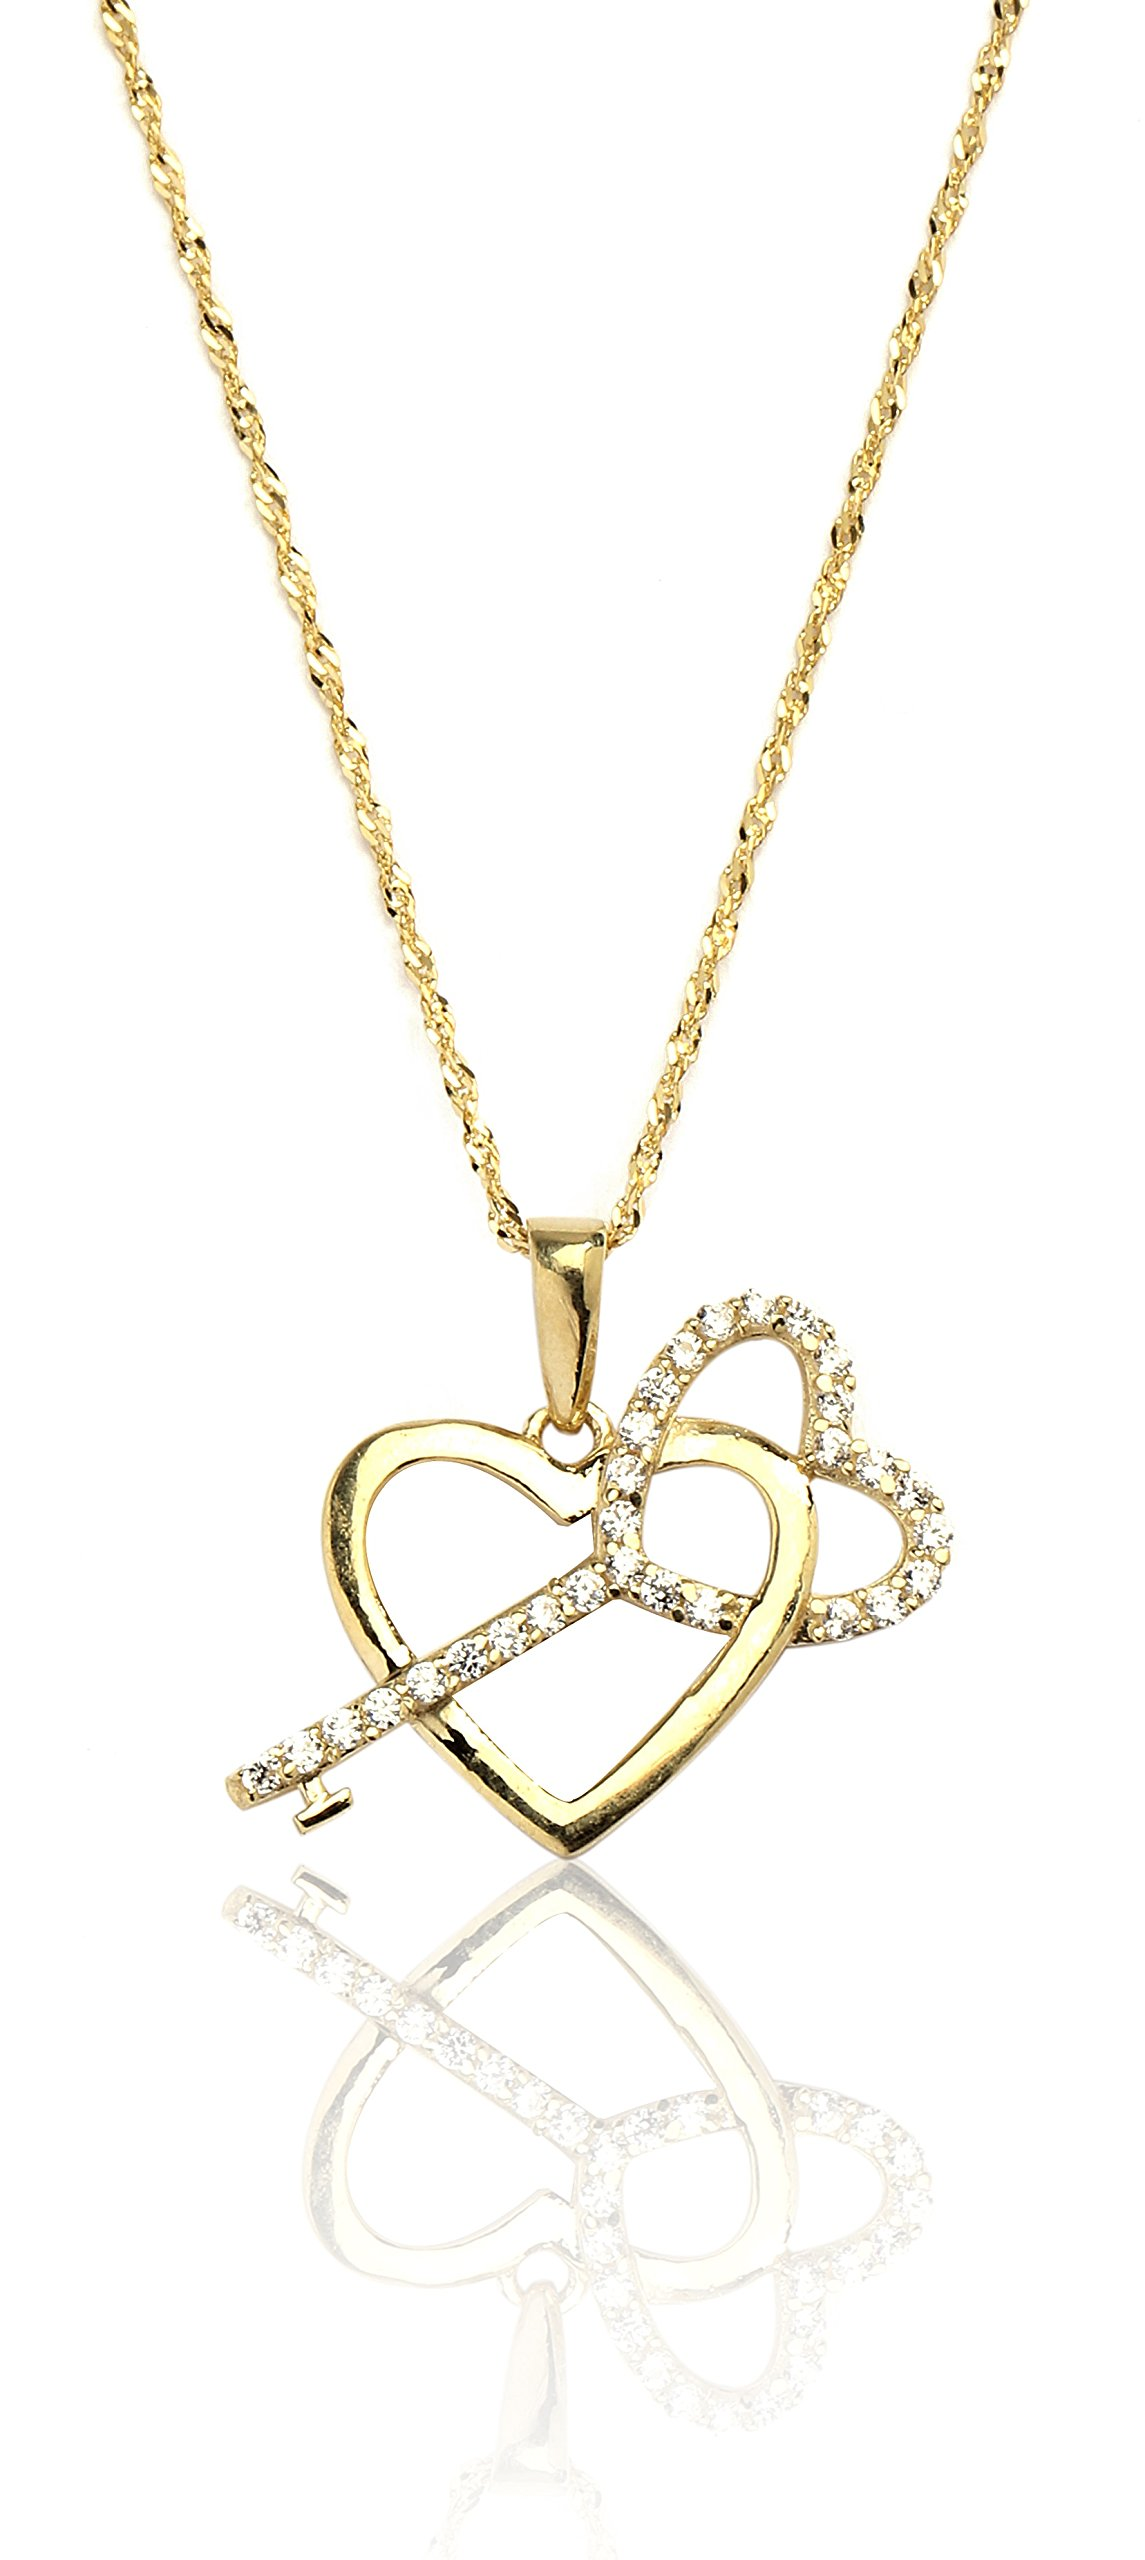 16'' 10k Yellow Gold Heart and Key Cubic Zirconia Charm Necklace for Women and Girls